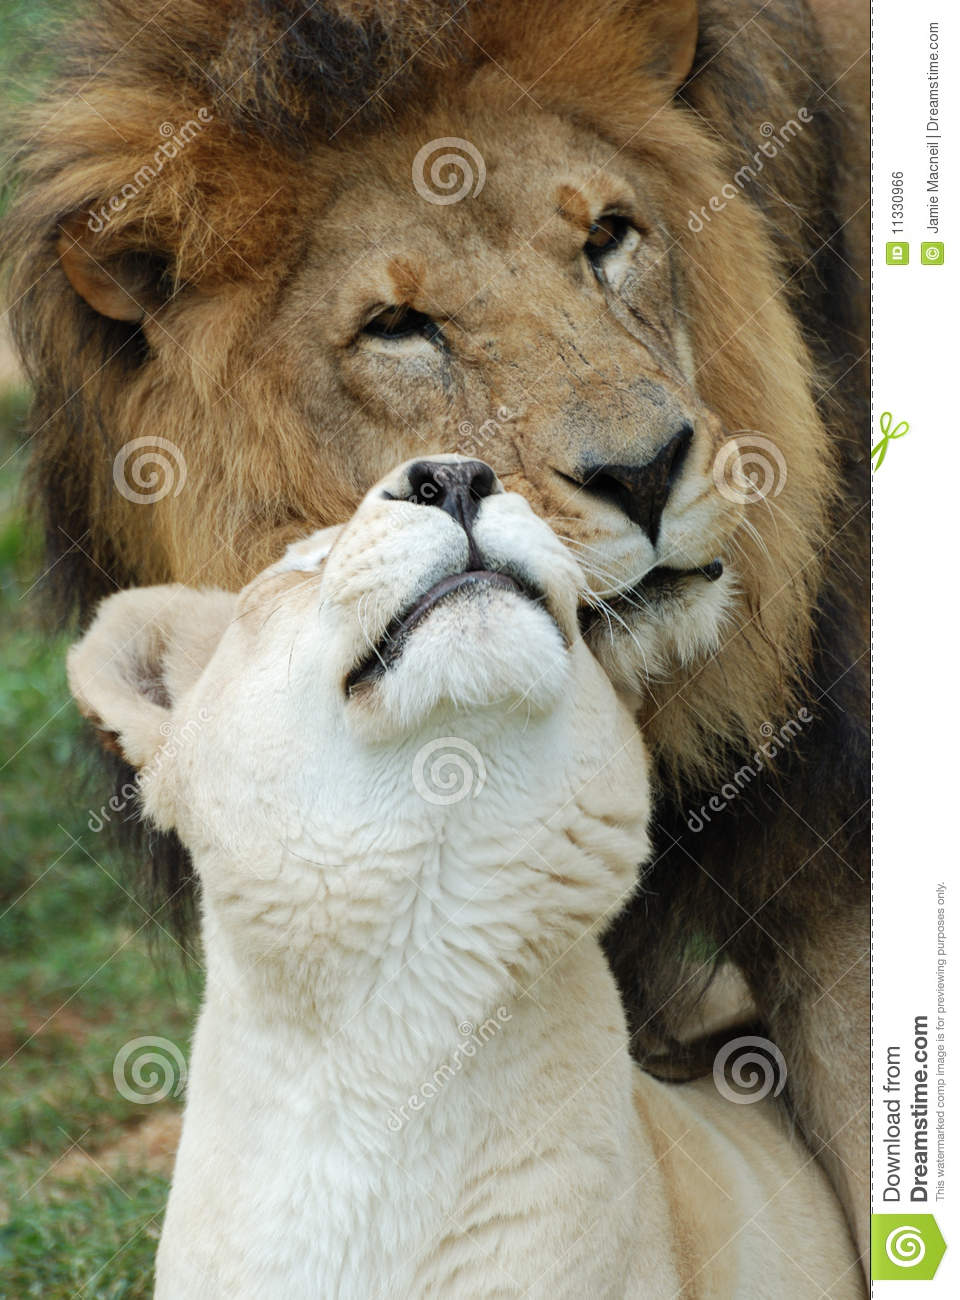 African Yellow Hair Lions In Love Stock Photo Image Of Hair Animal Intense